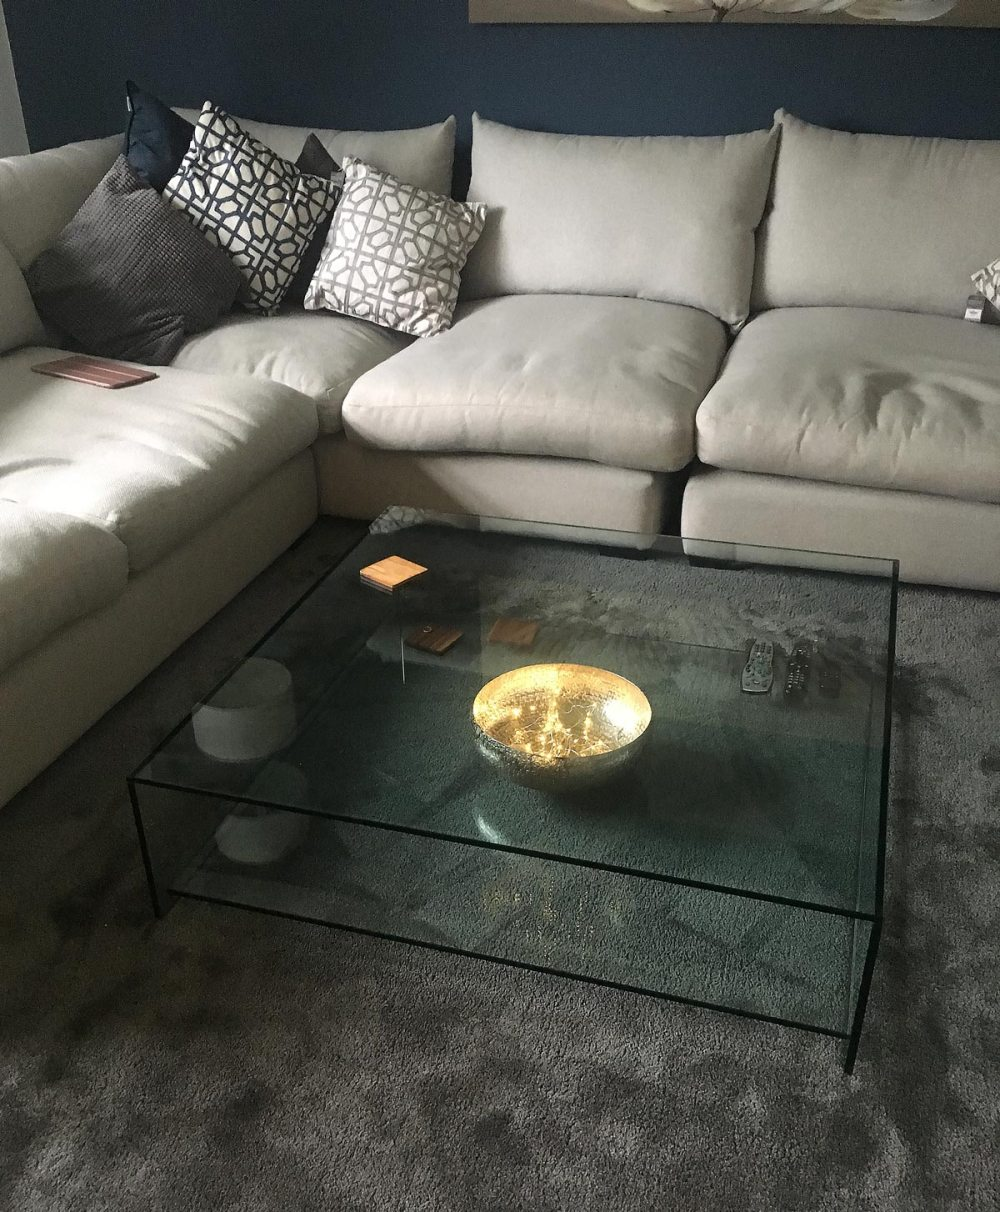 Judd glass Coffee Table